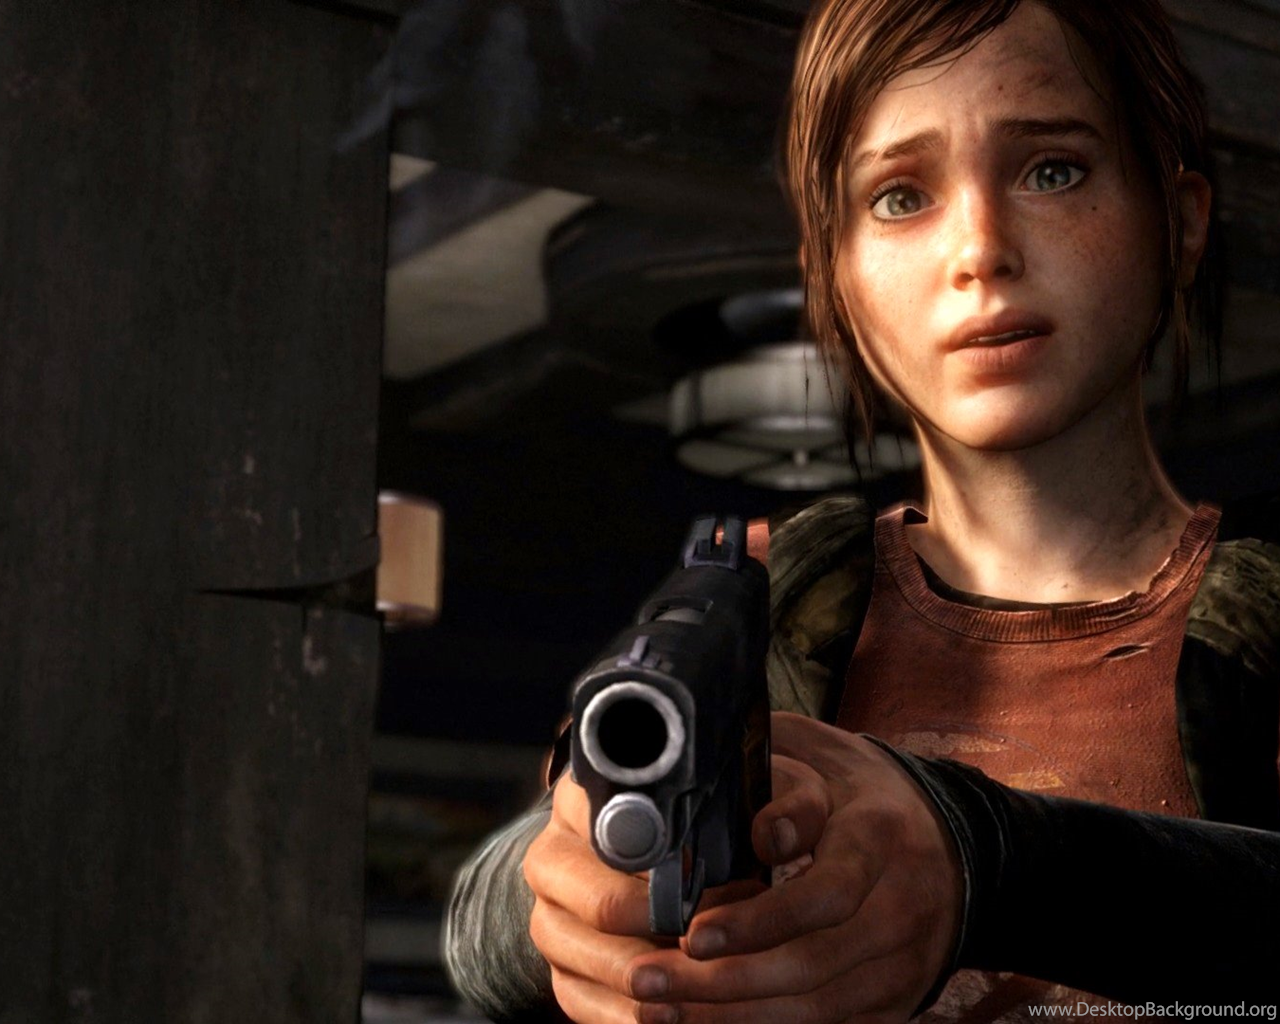 54 The Last Of Us Remastered Hd Wallpapers Desktop Background